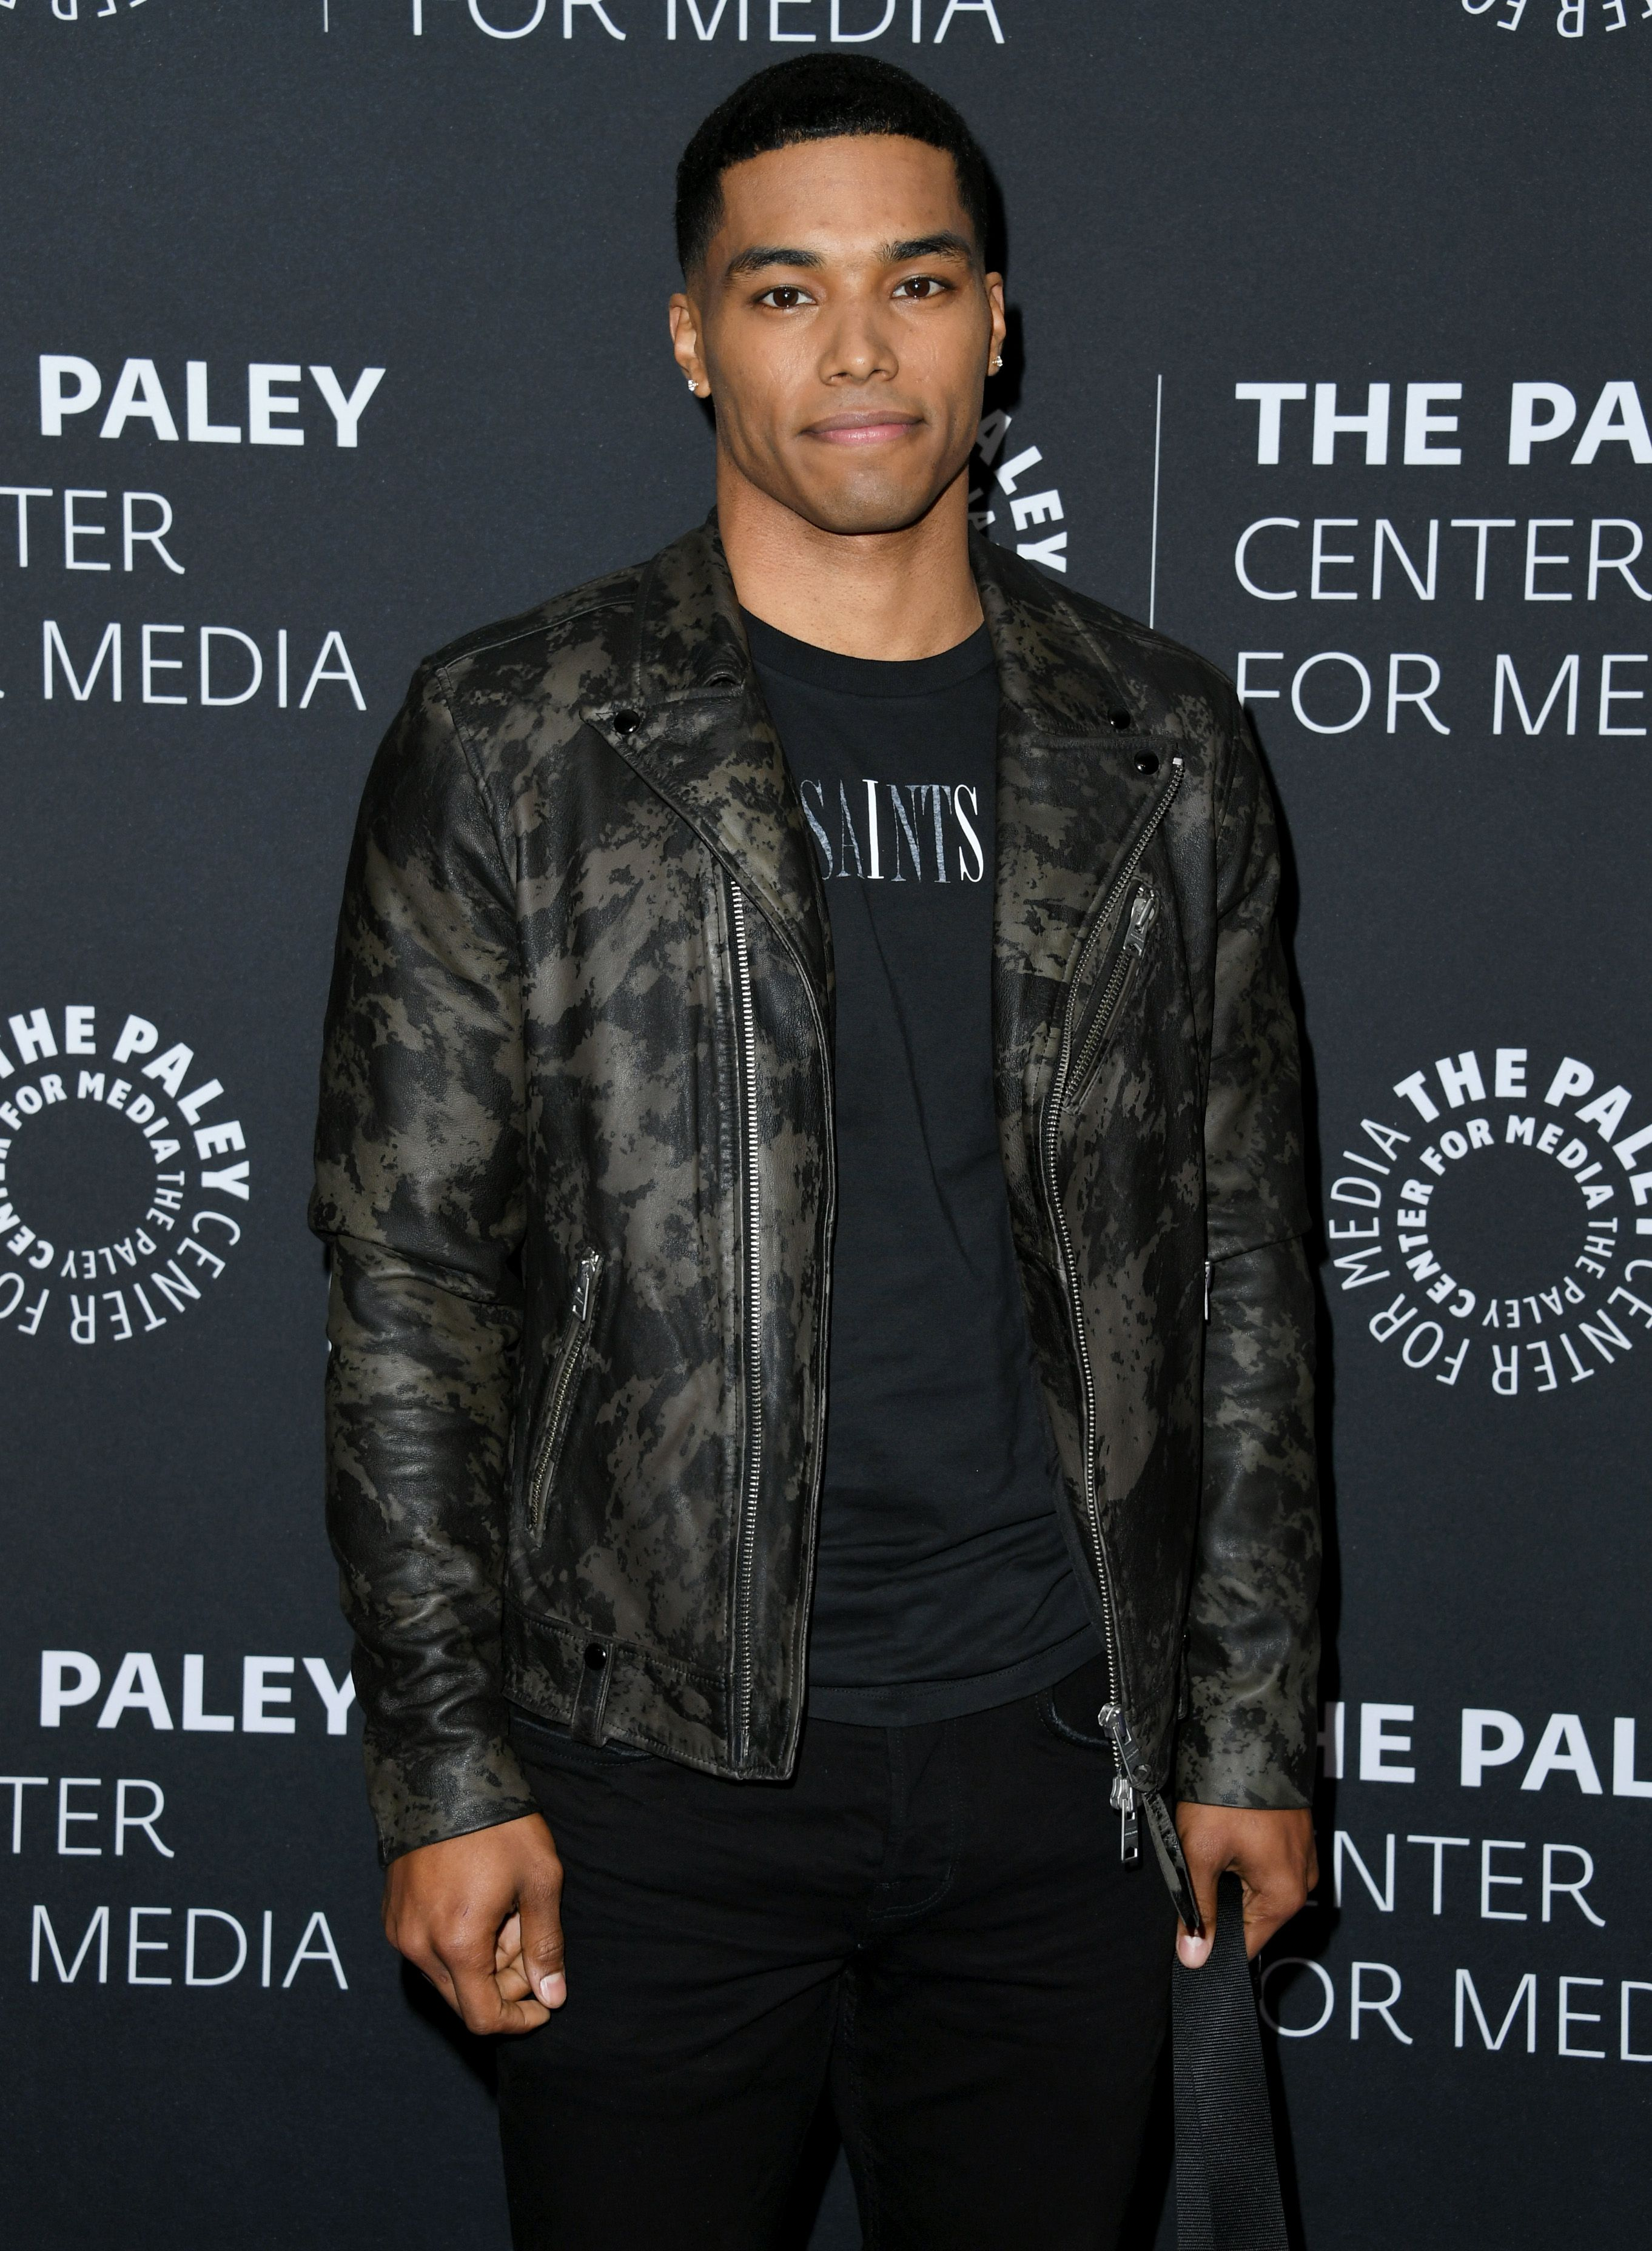 """Rome Flynn at the premiere of the last season of """"How To Get Away With Murder"""" in November 2019 in Beverly Hills 